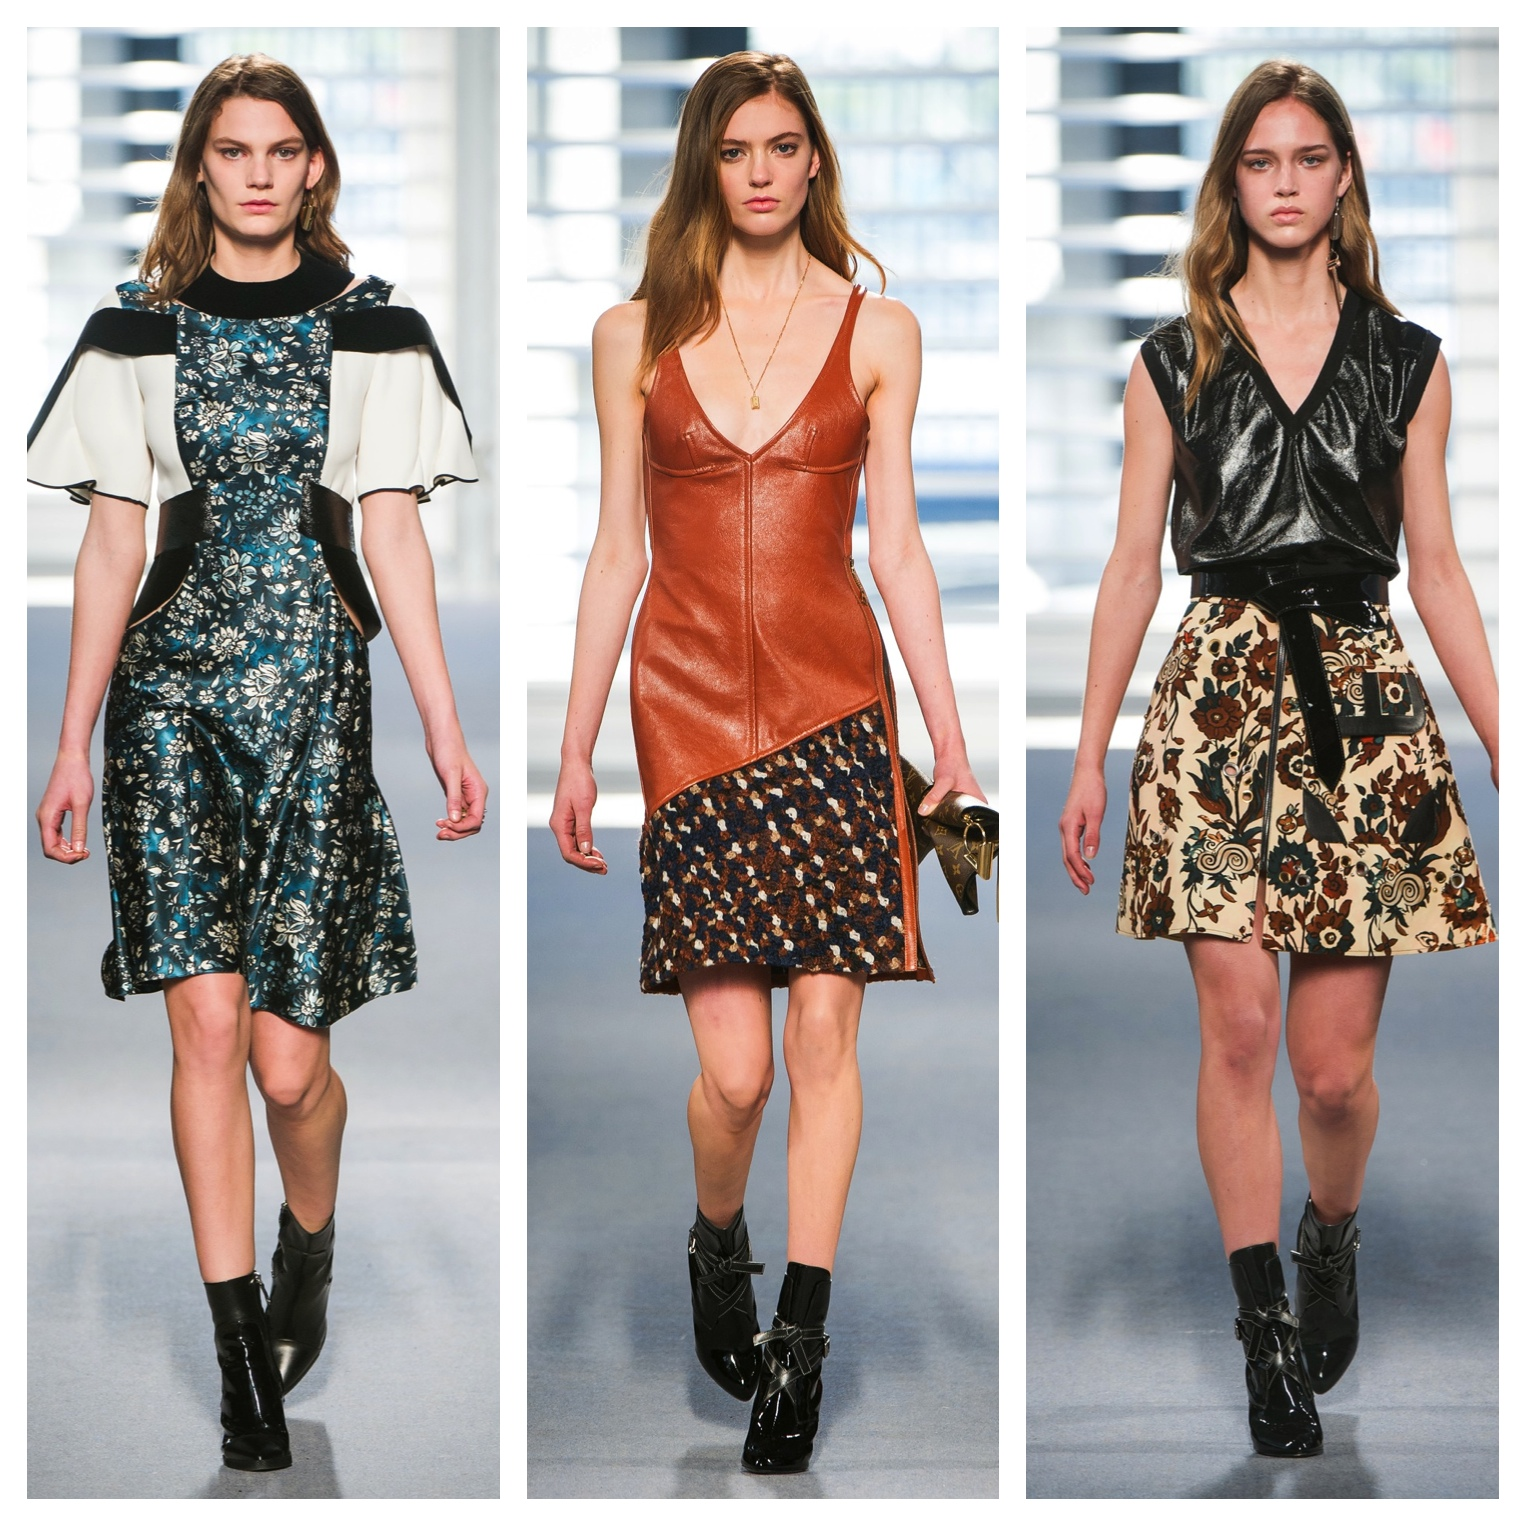 Louis Vuitton Women's Ready-To-Wear Fall/Winter 2014-2015 Fashion Show